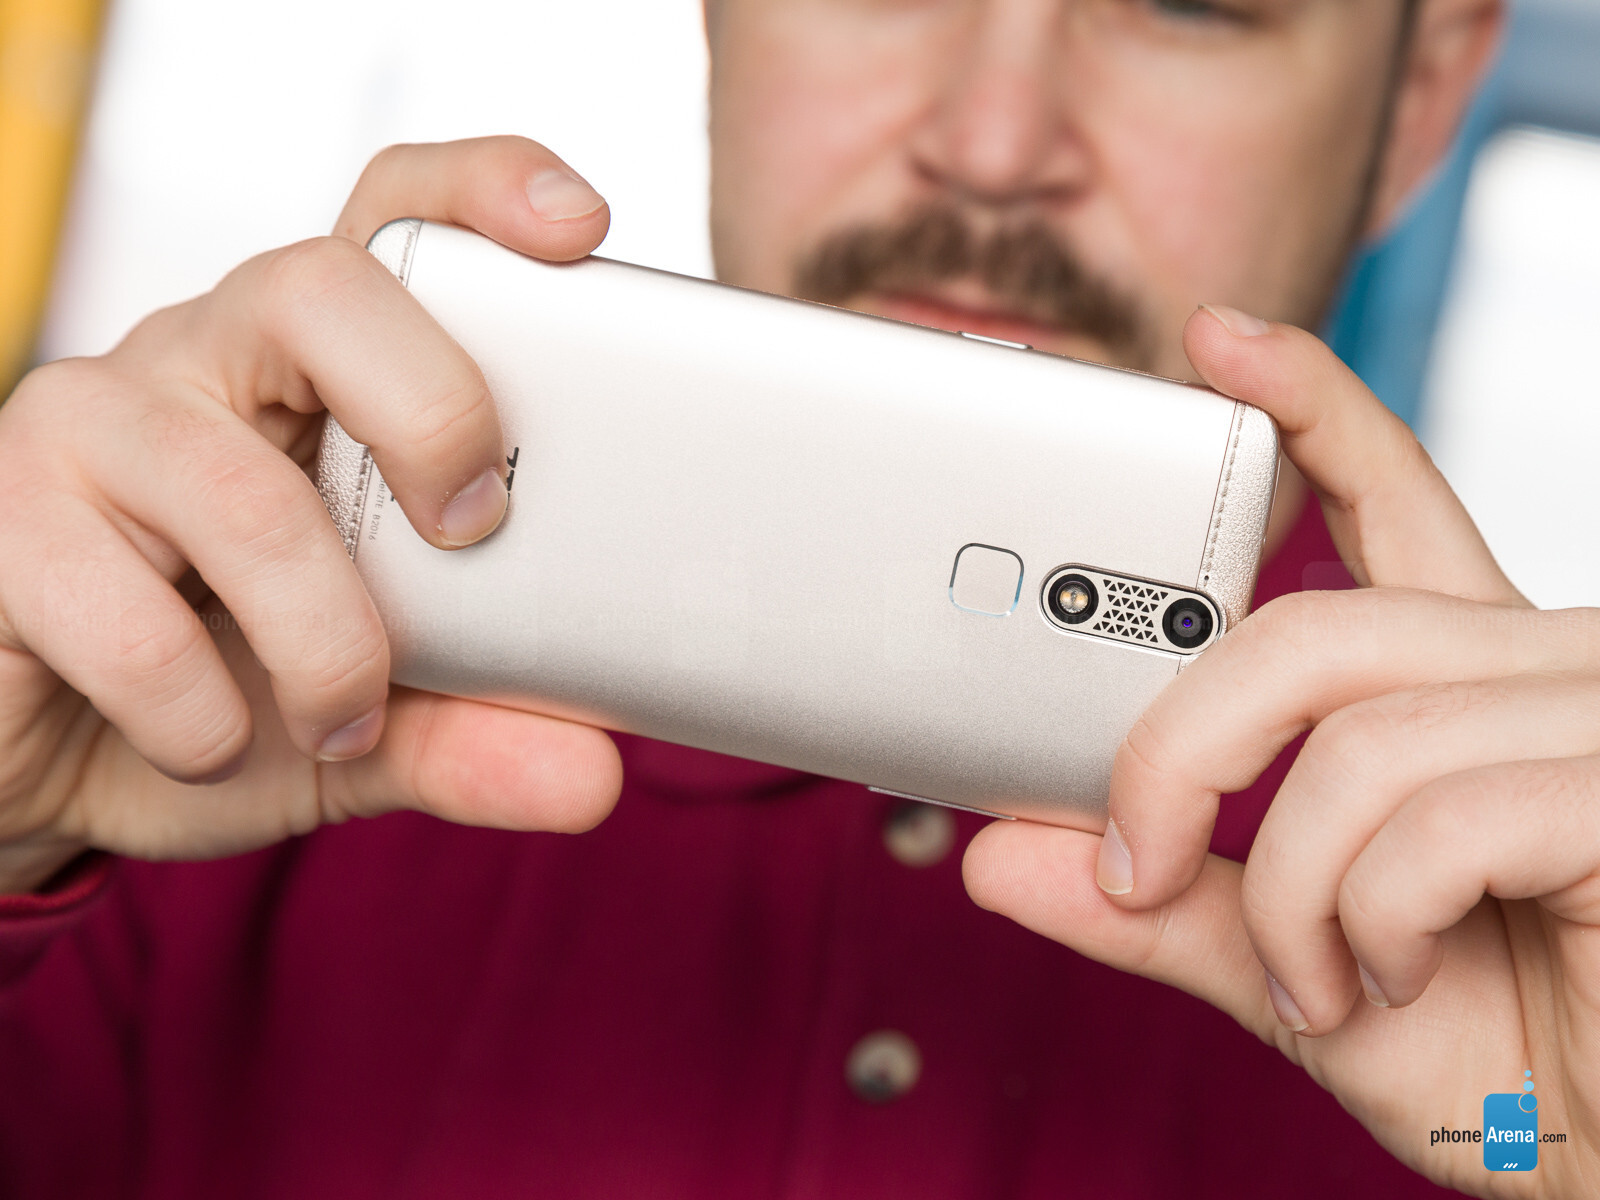 use NVIDIA zte axon 7 call quality might have